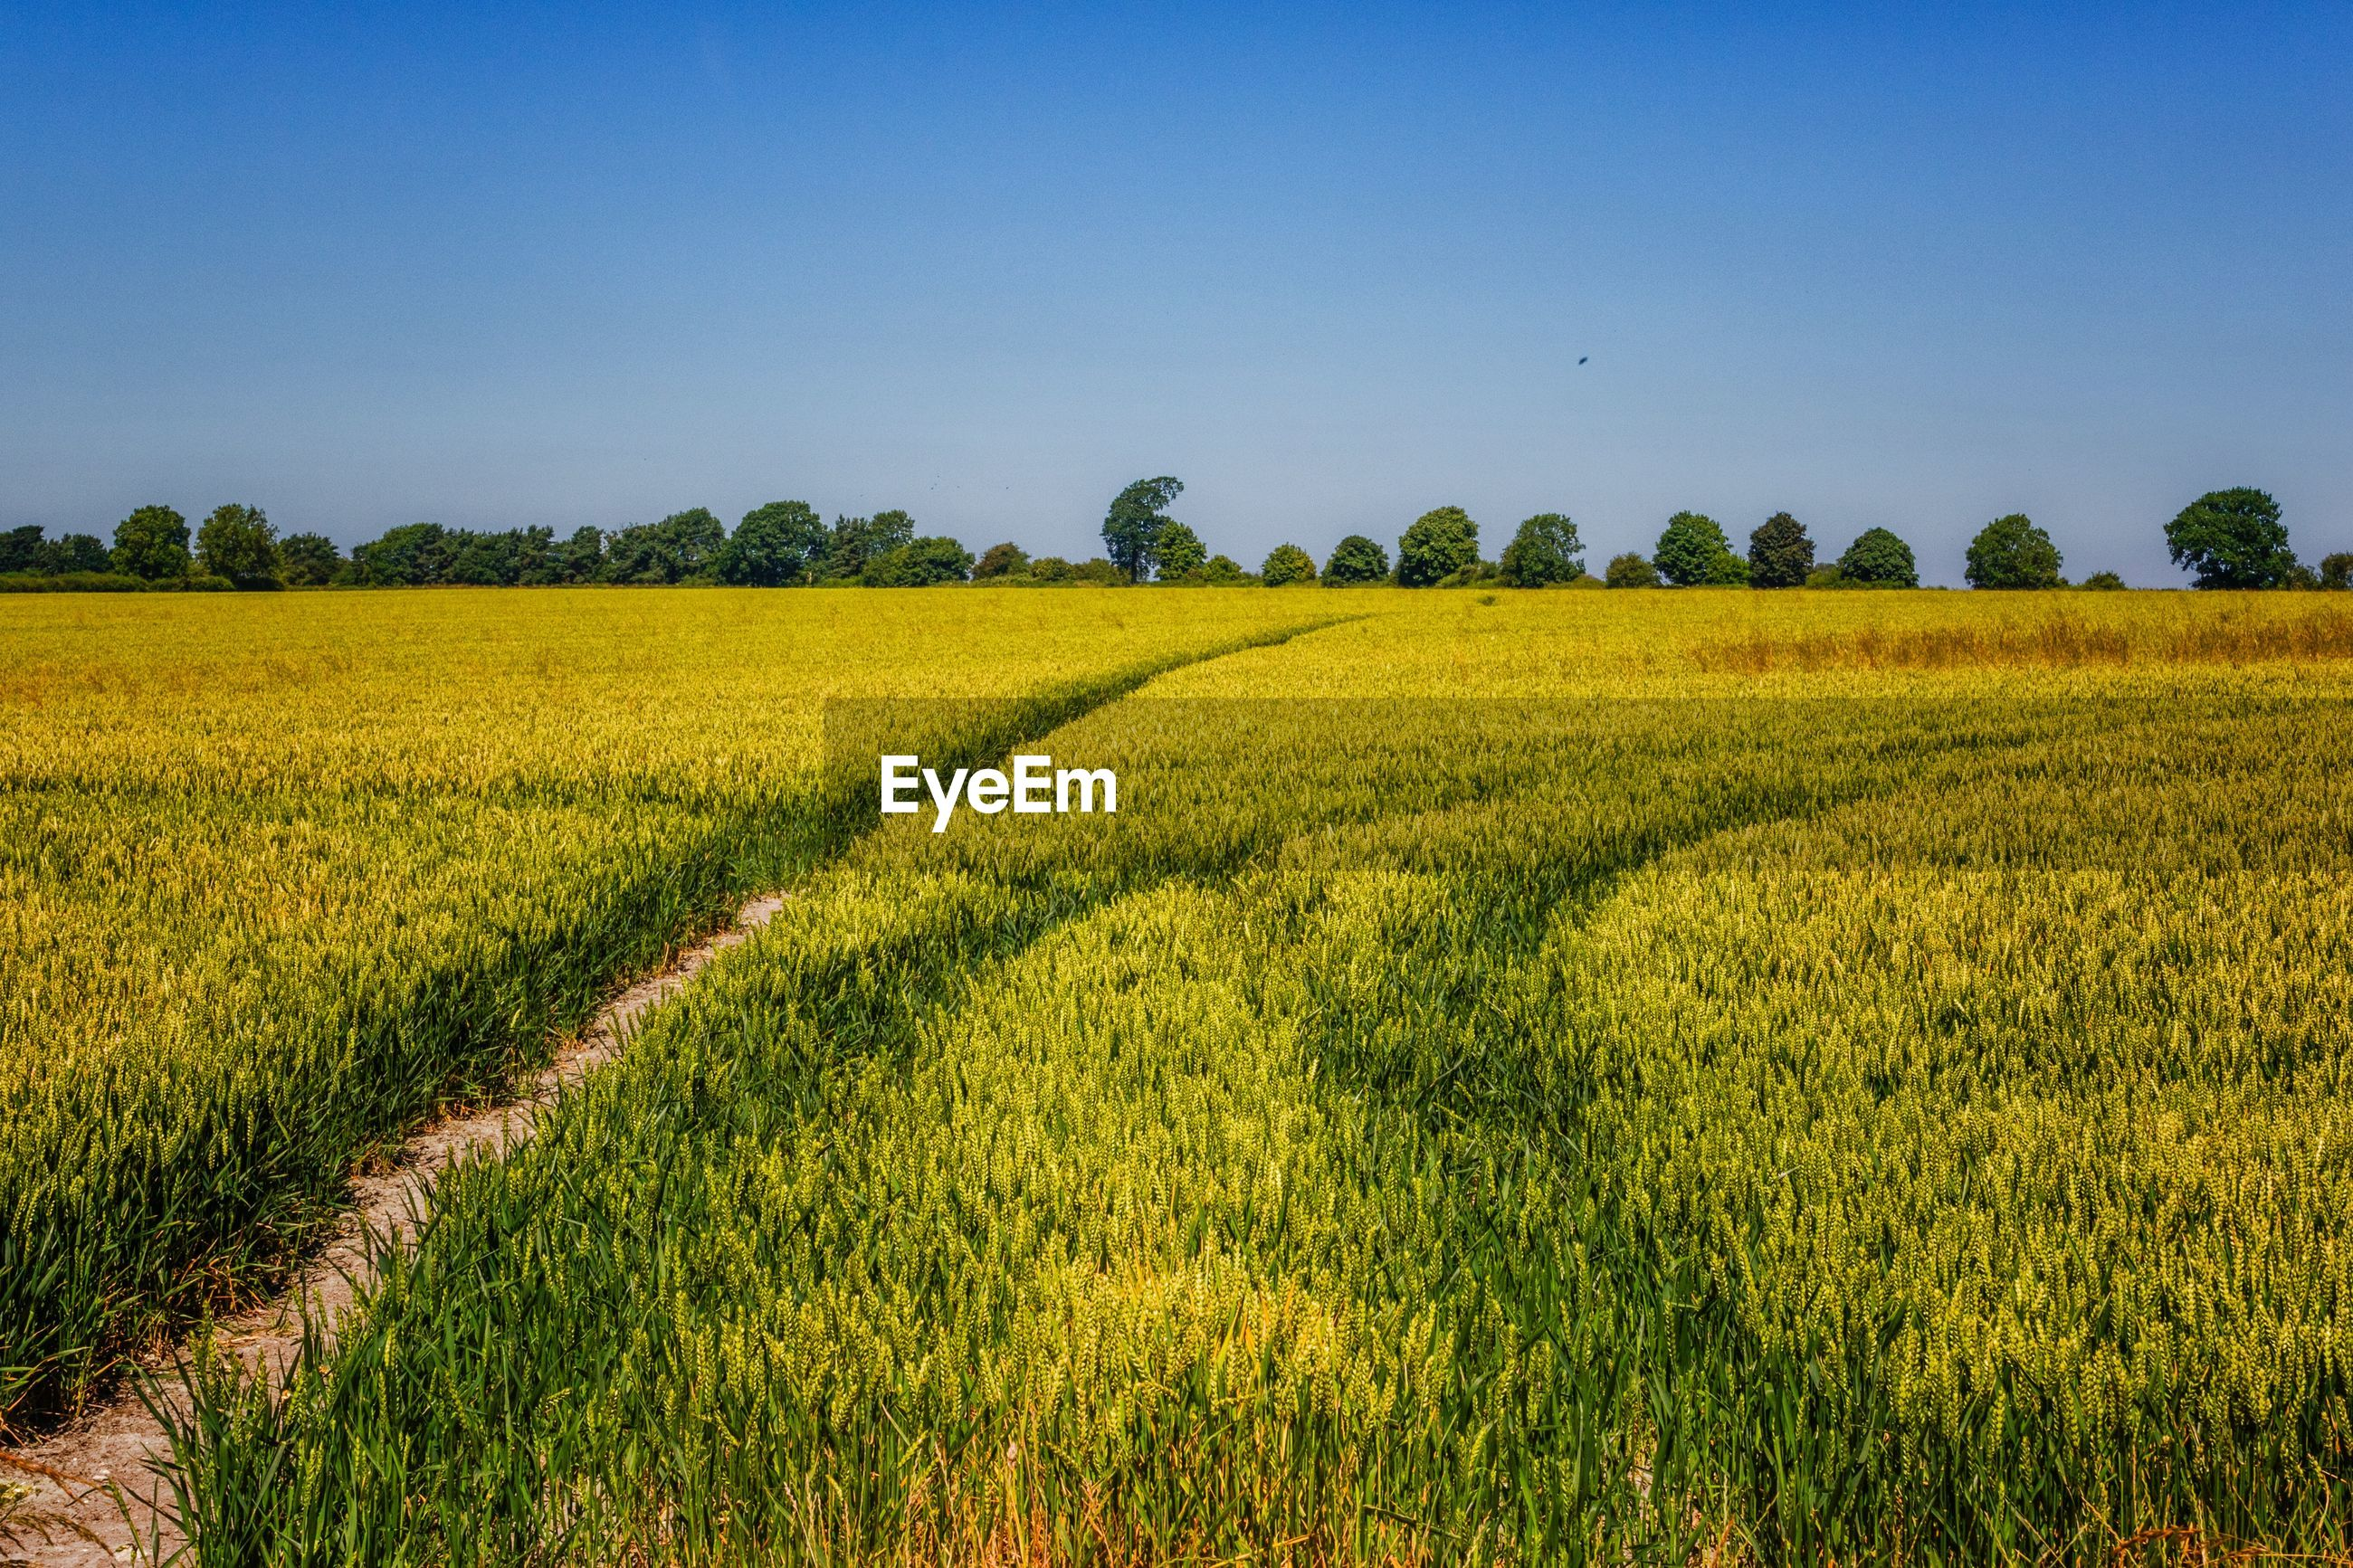 SCENIC VIEW OF CROP FIELD AGAINST CLEAR SKY